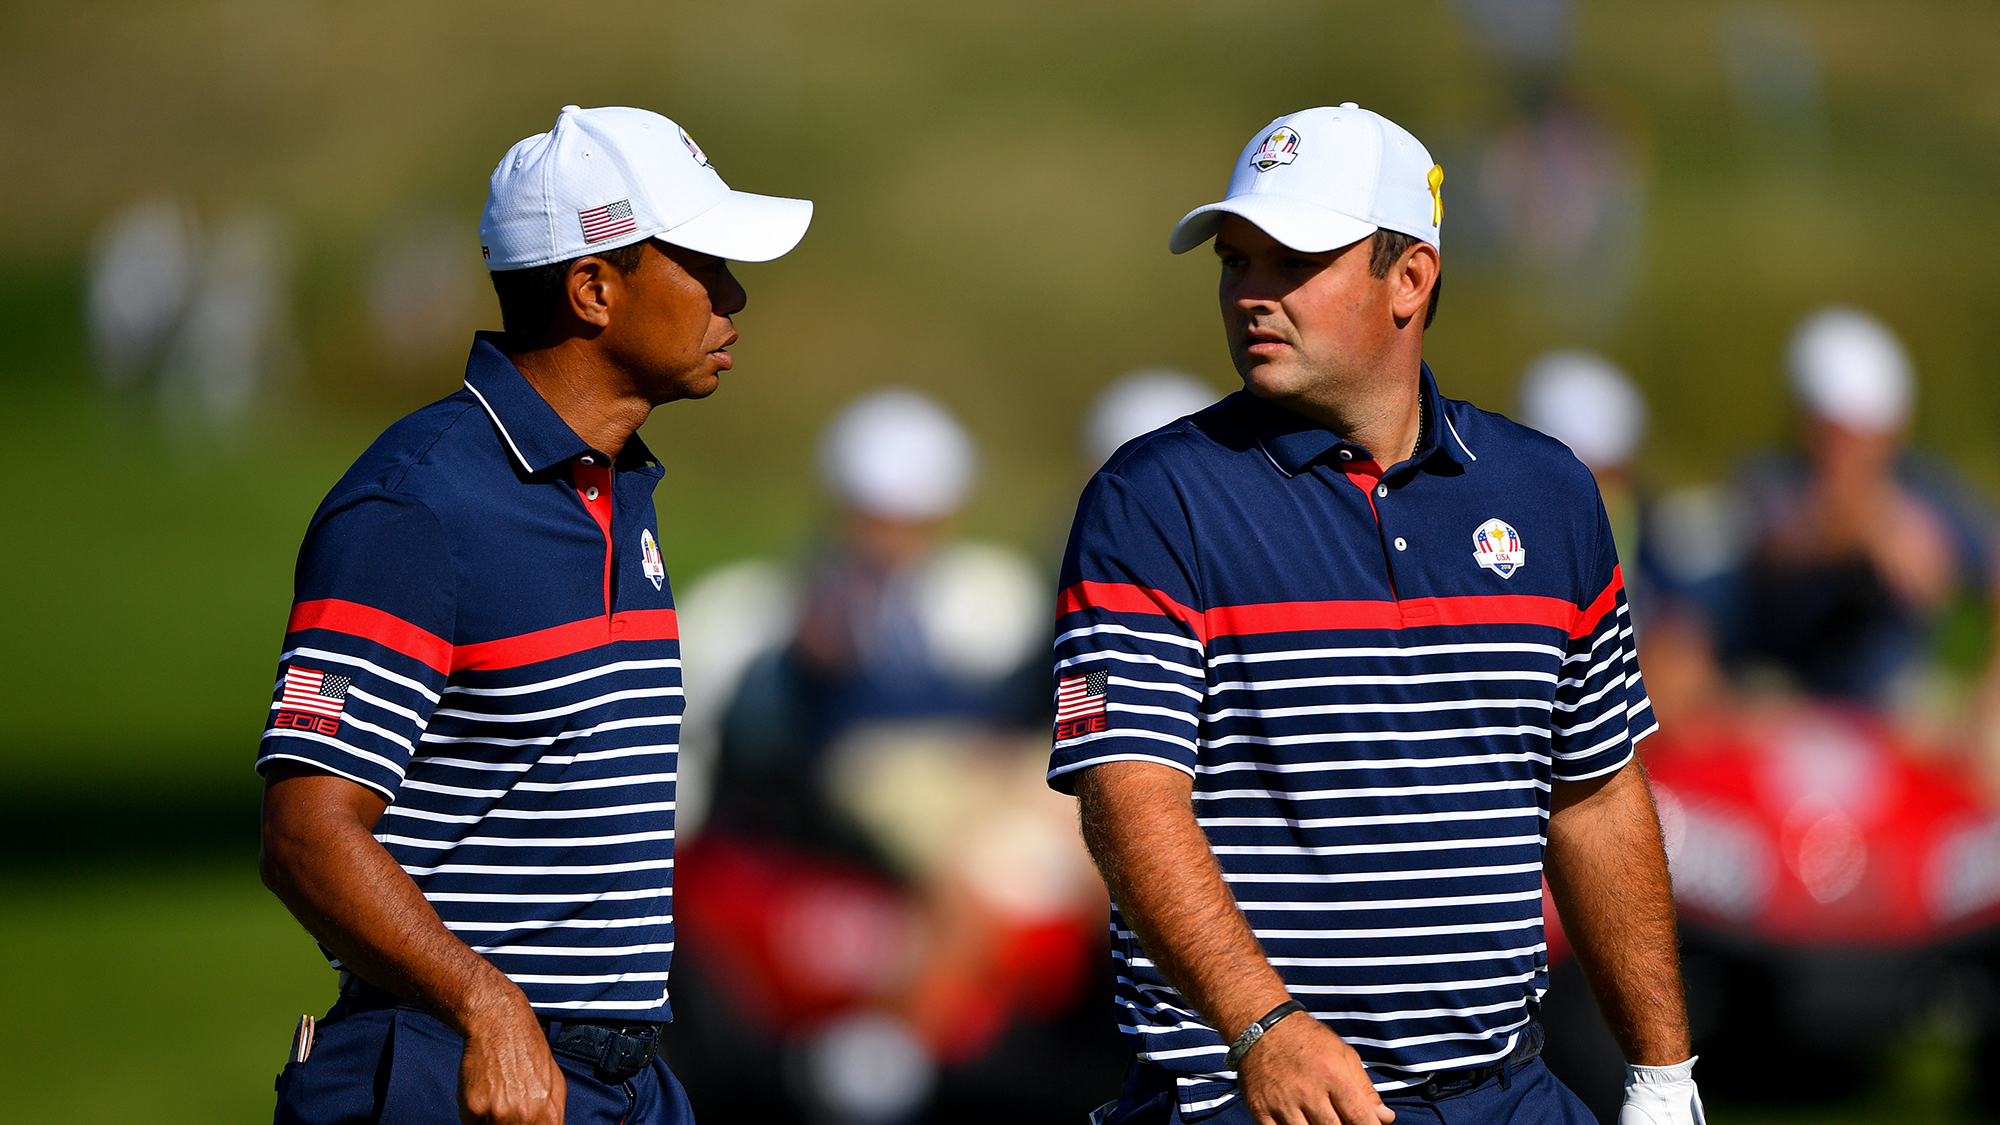 Tiger Woods Patrick Reed Ryder Cup Pairing